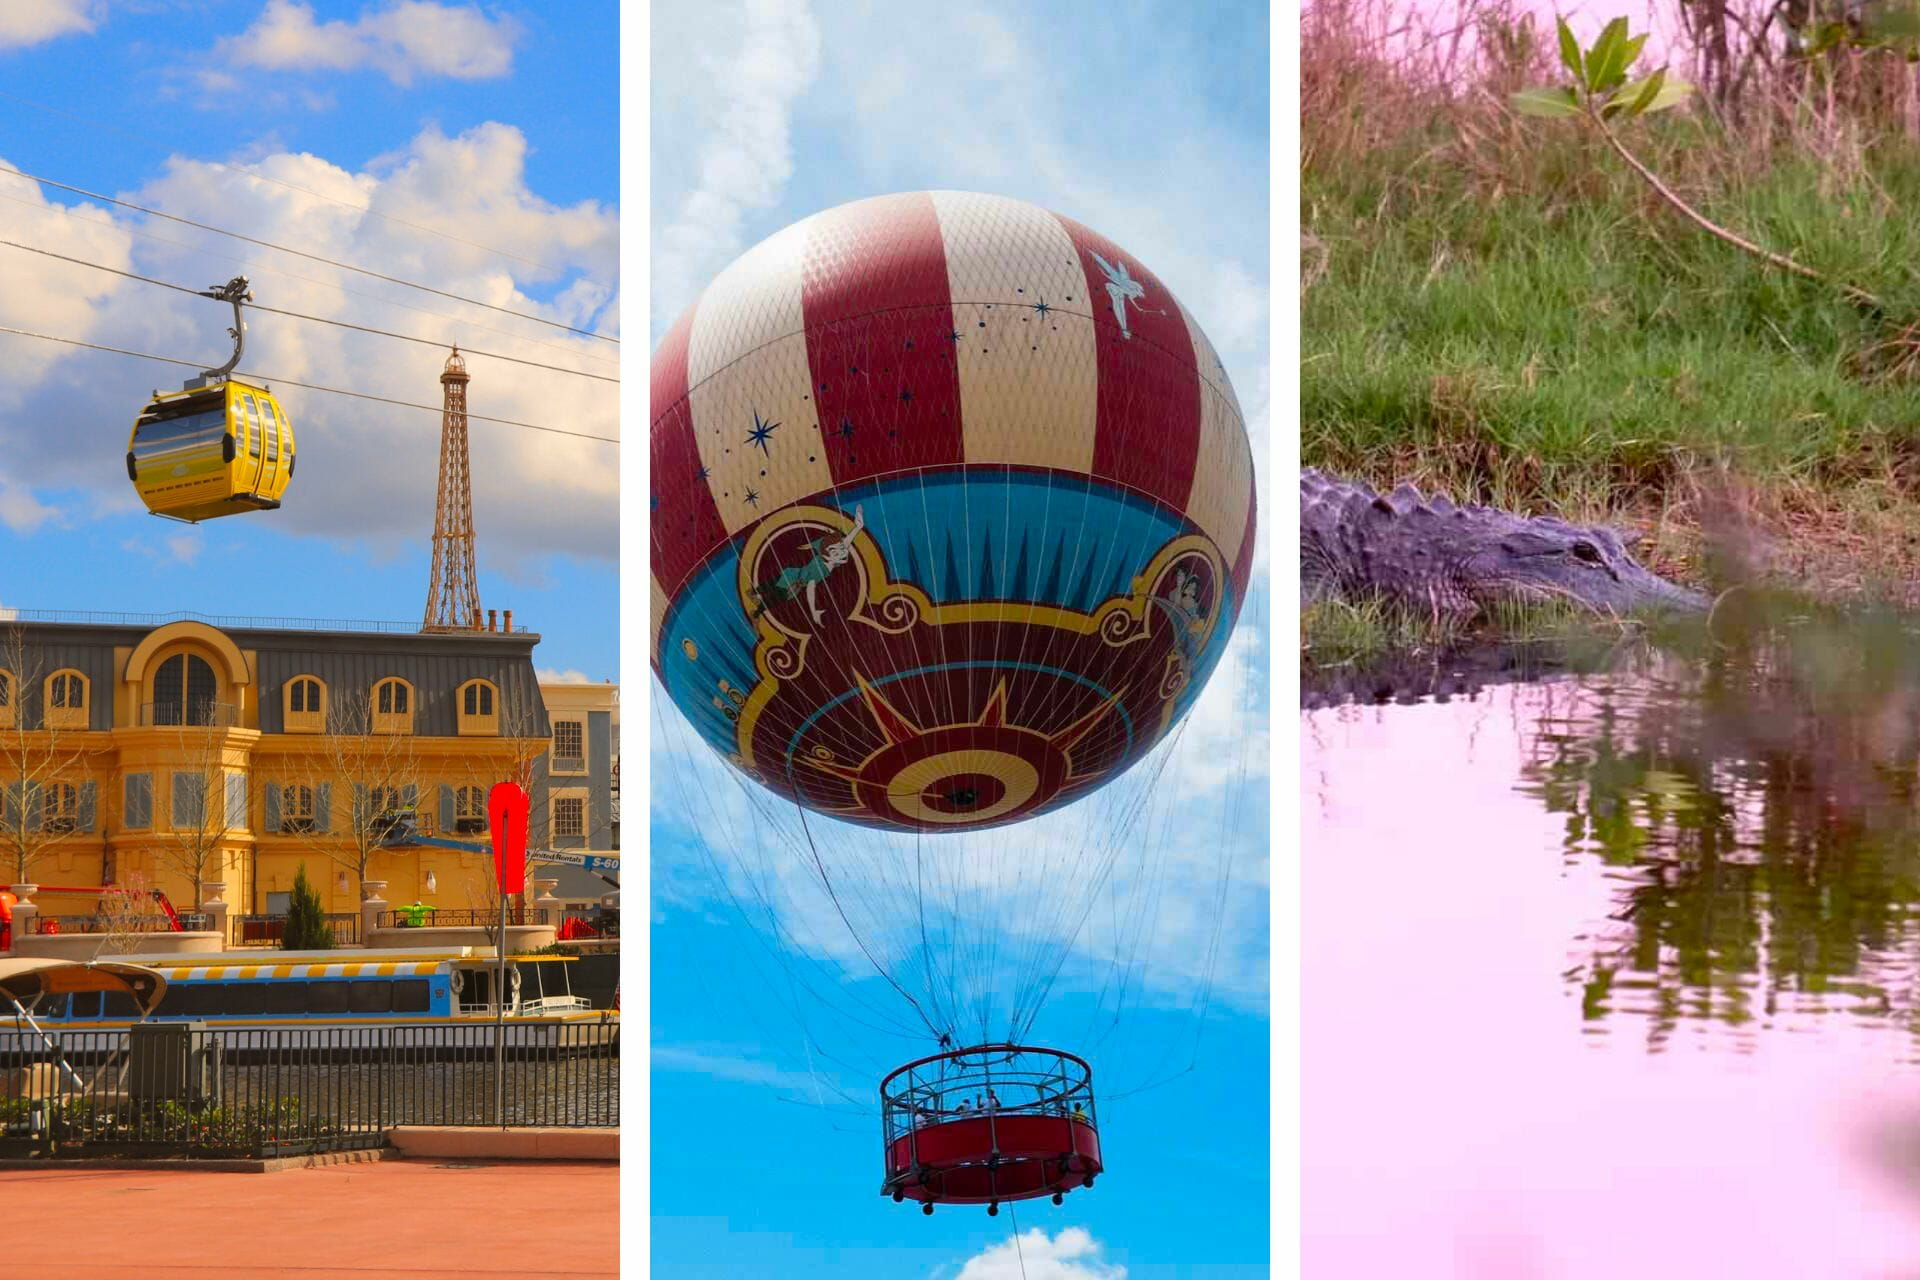 33+ Best Things to Do in Orlando for Adults via @allamericanatlas